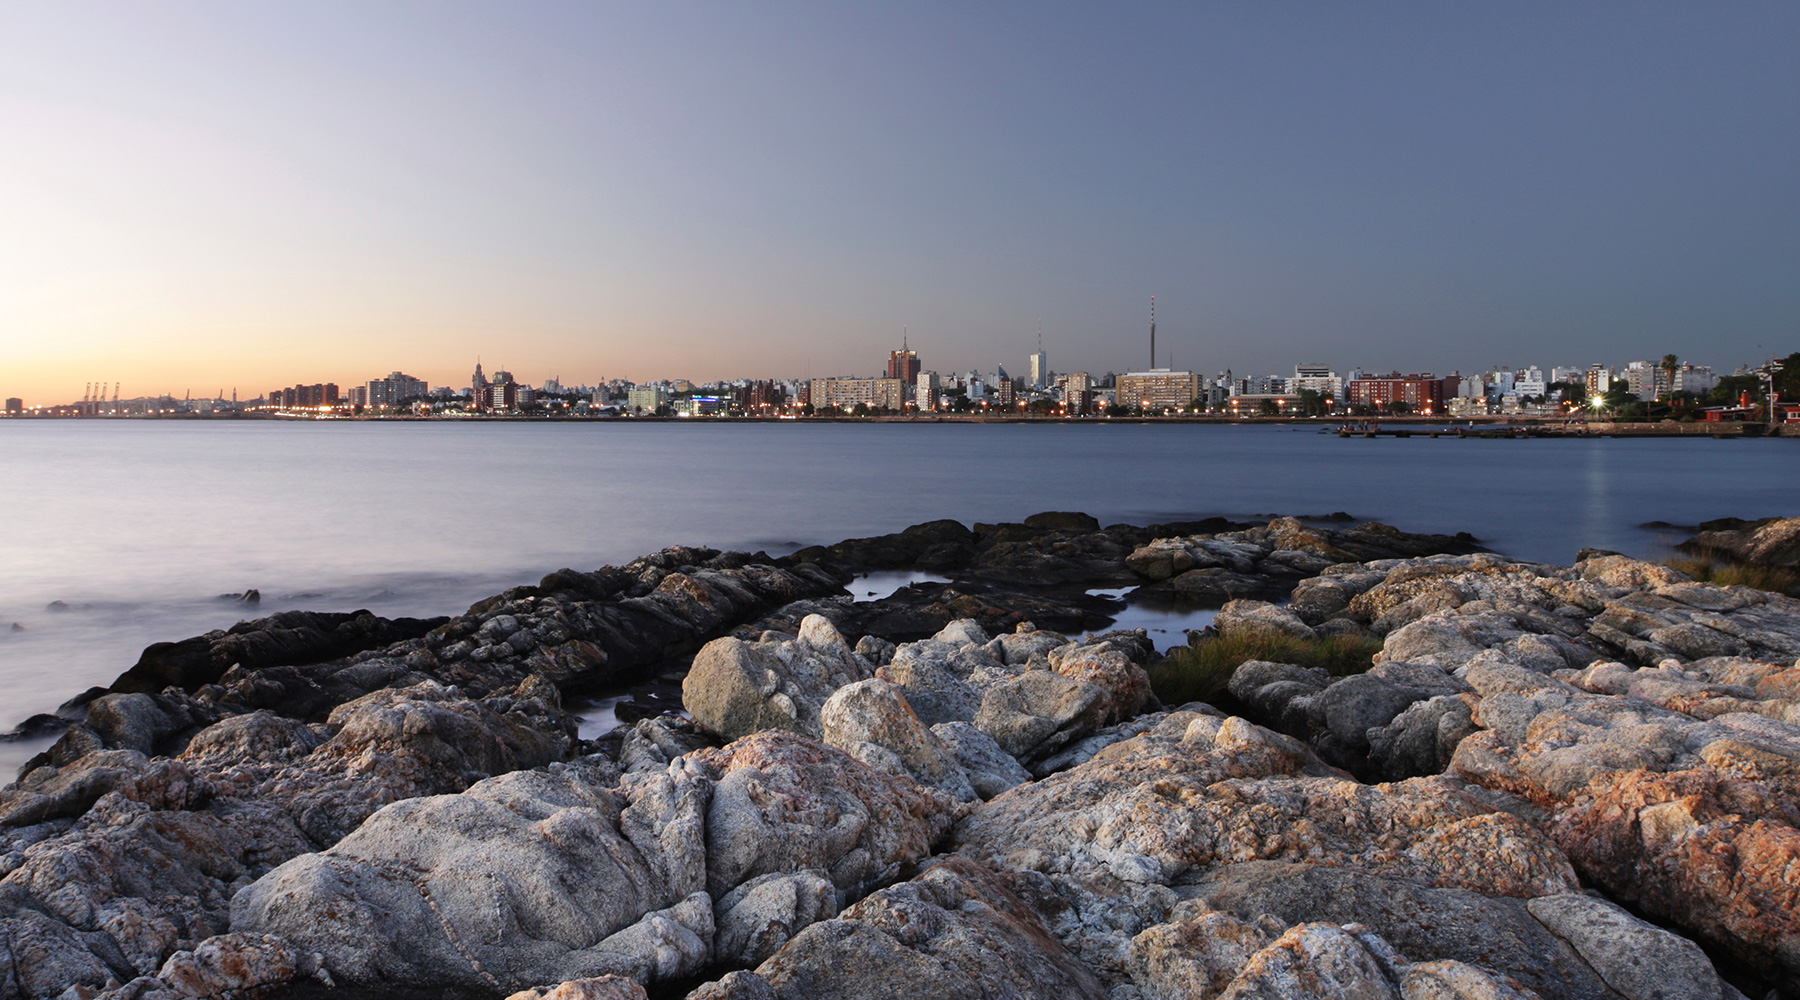 The skyline of Montevideo, Uruguay, at sunset.